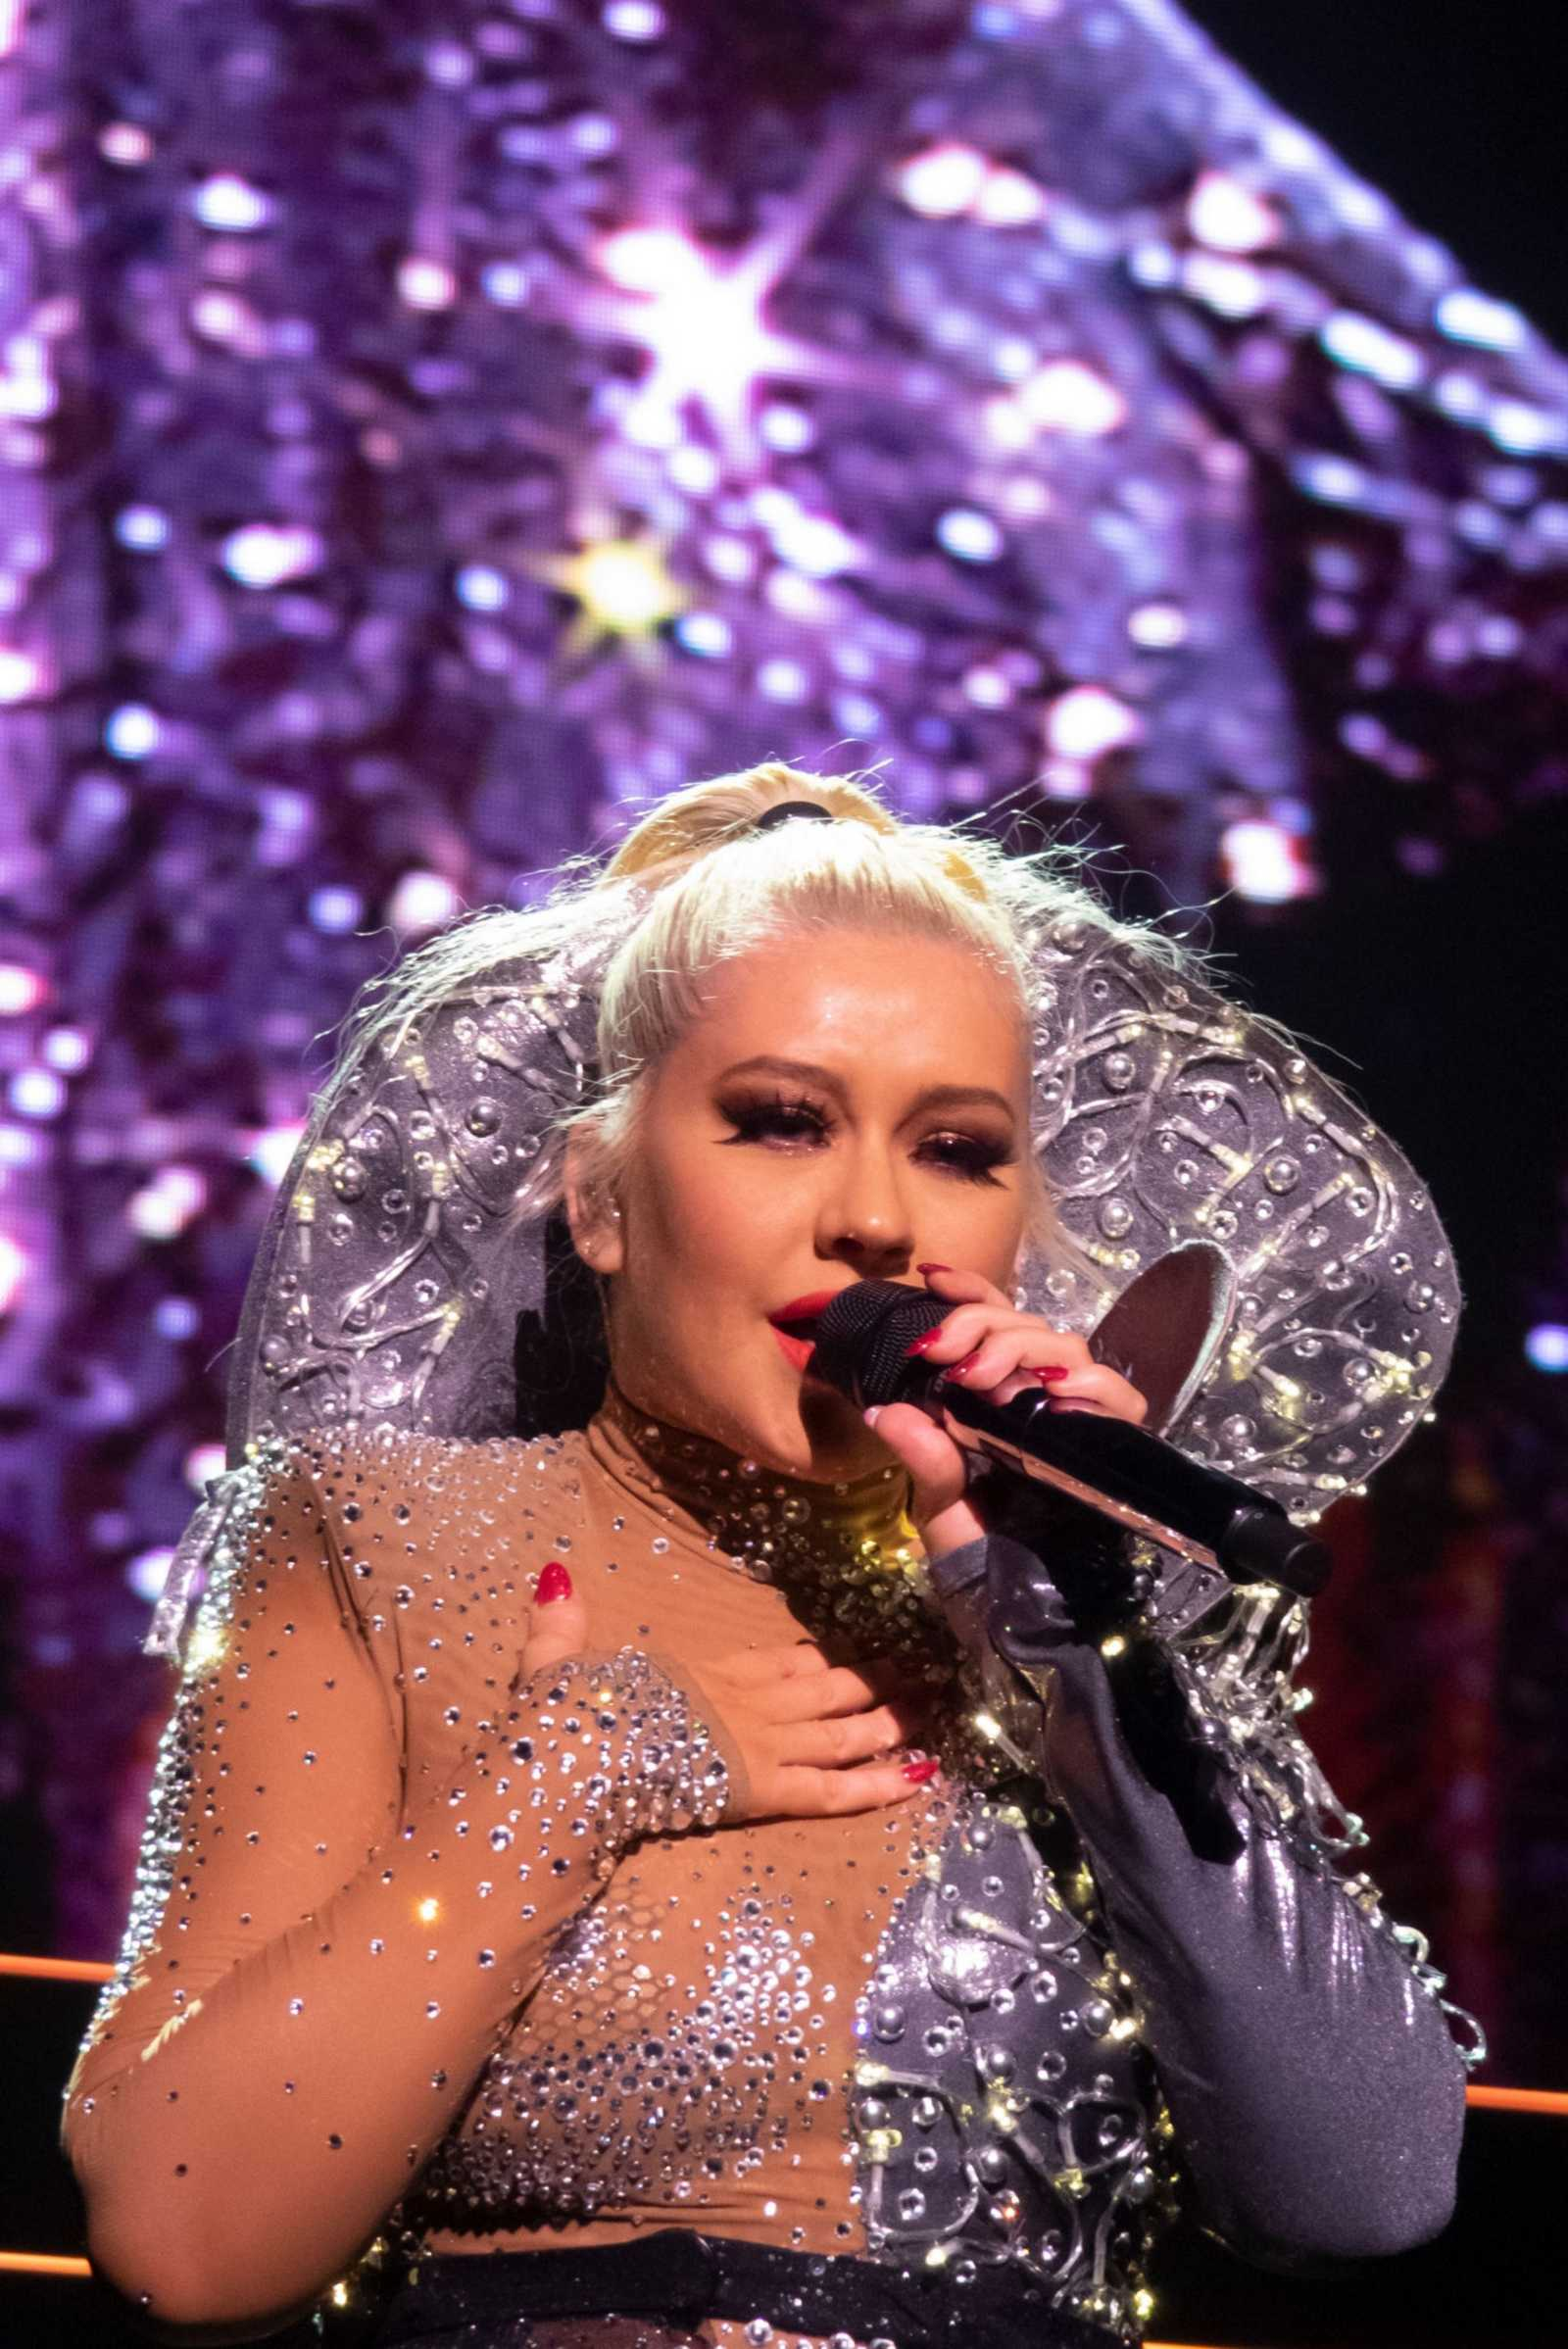 Christina_Aguilera_-_The_X_Tour_in_London2C_England_November_102C_2019-37.jpg